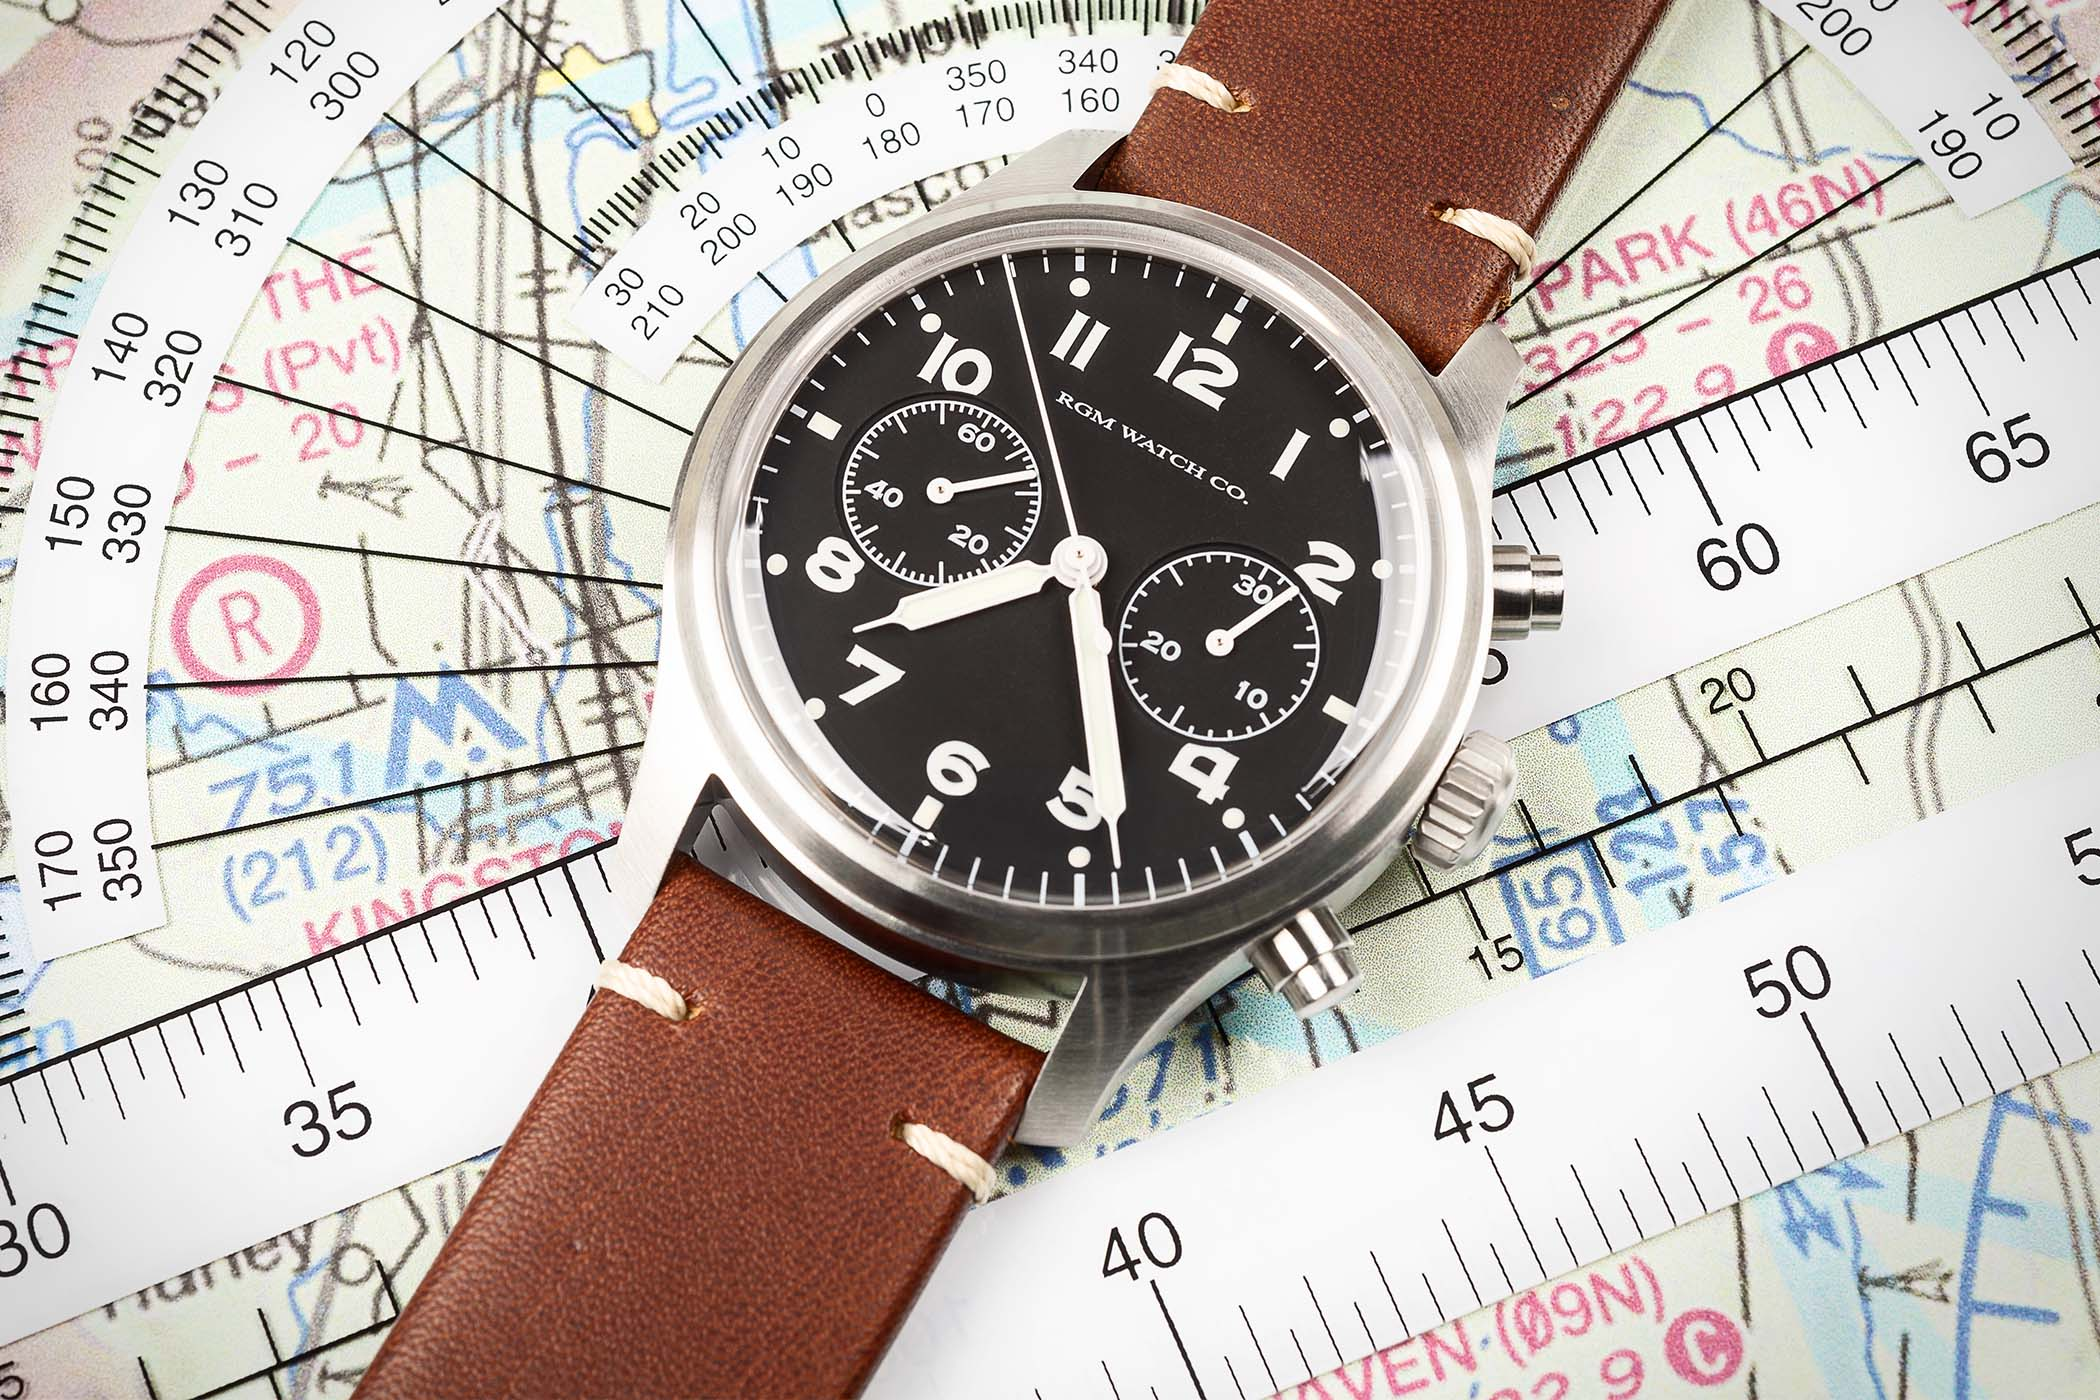 RGM Model 600 Chronograph Pilot - american watchmaking